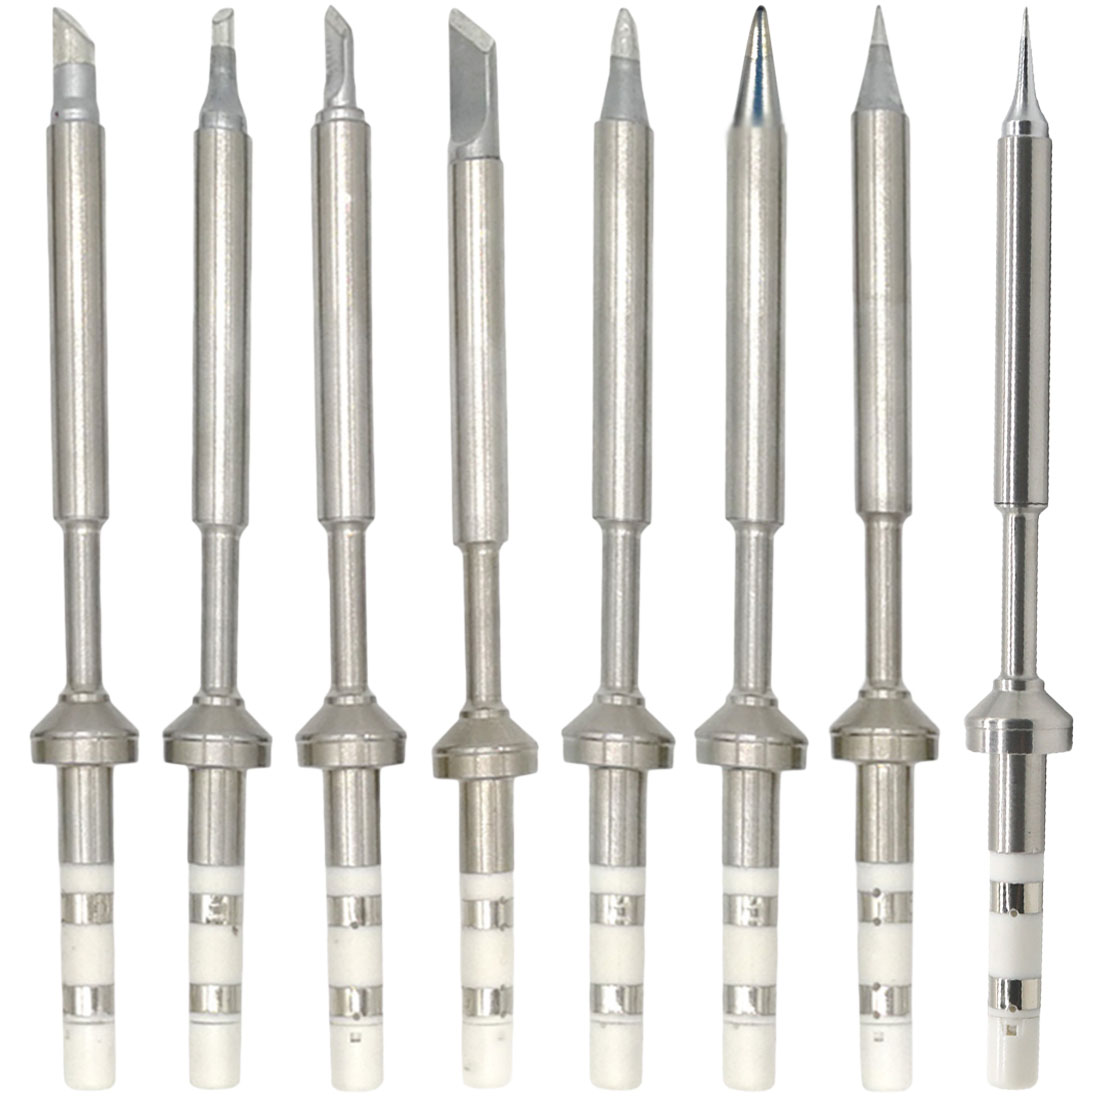 TS100 Soldering Iron Tips Lead Free Replacement Various Models Of Tip Electric Soldering Iron Tip